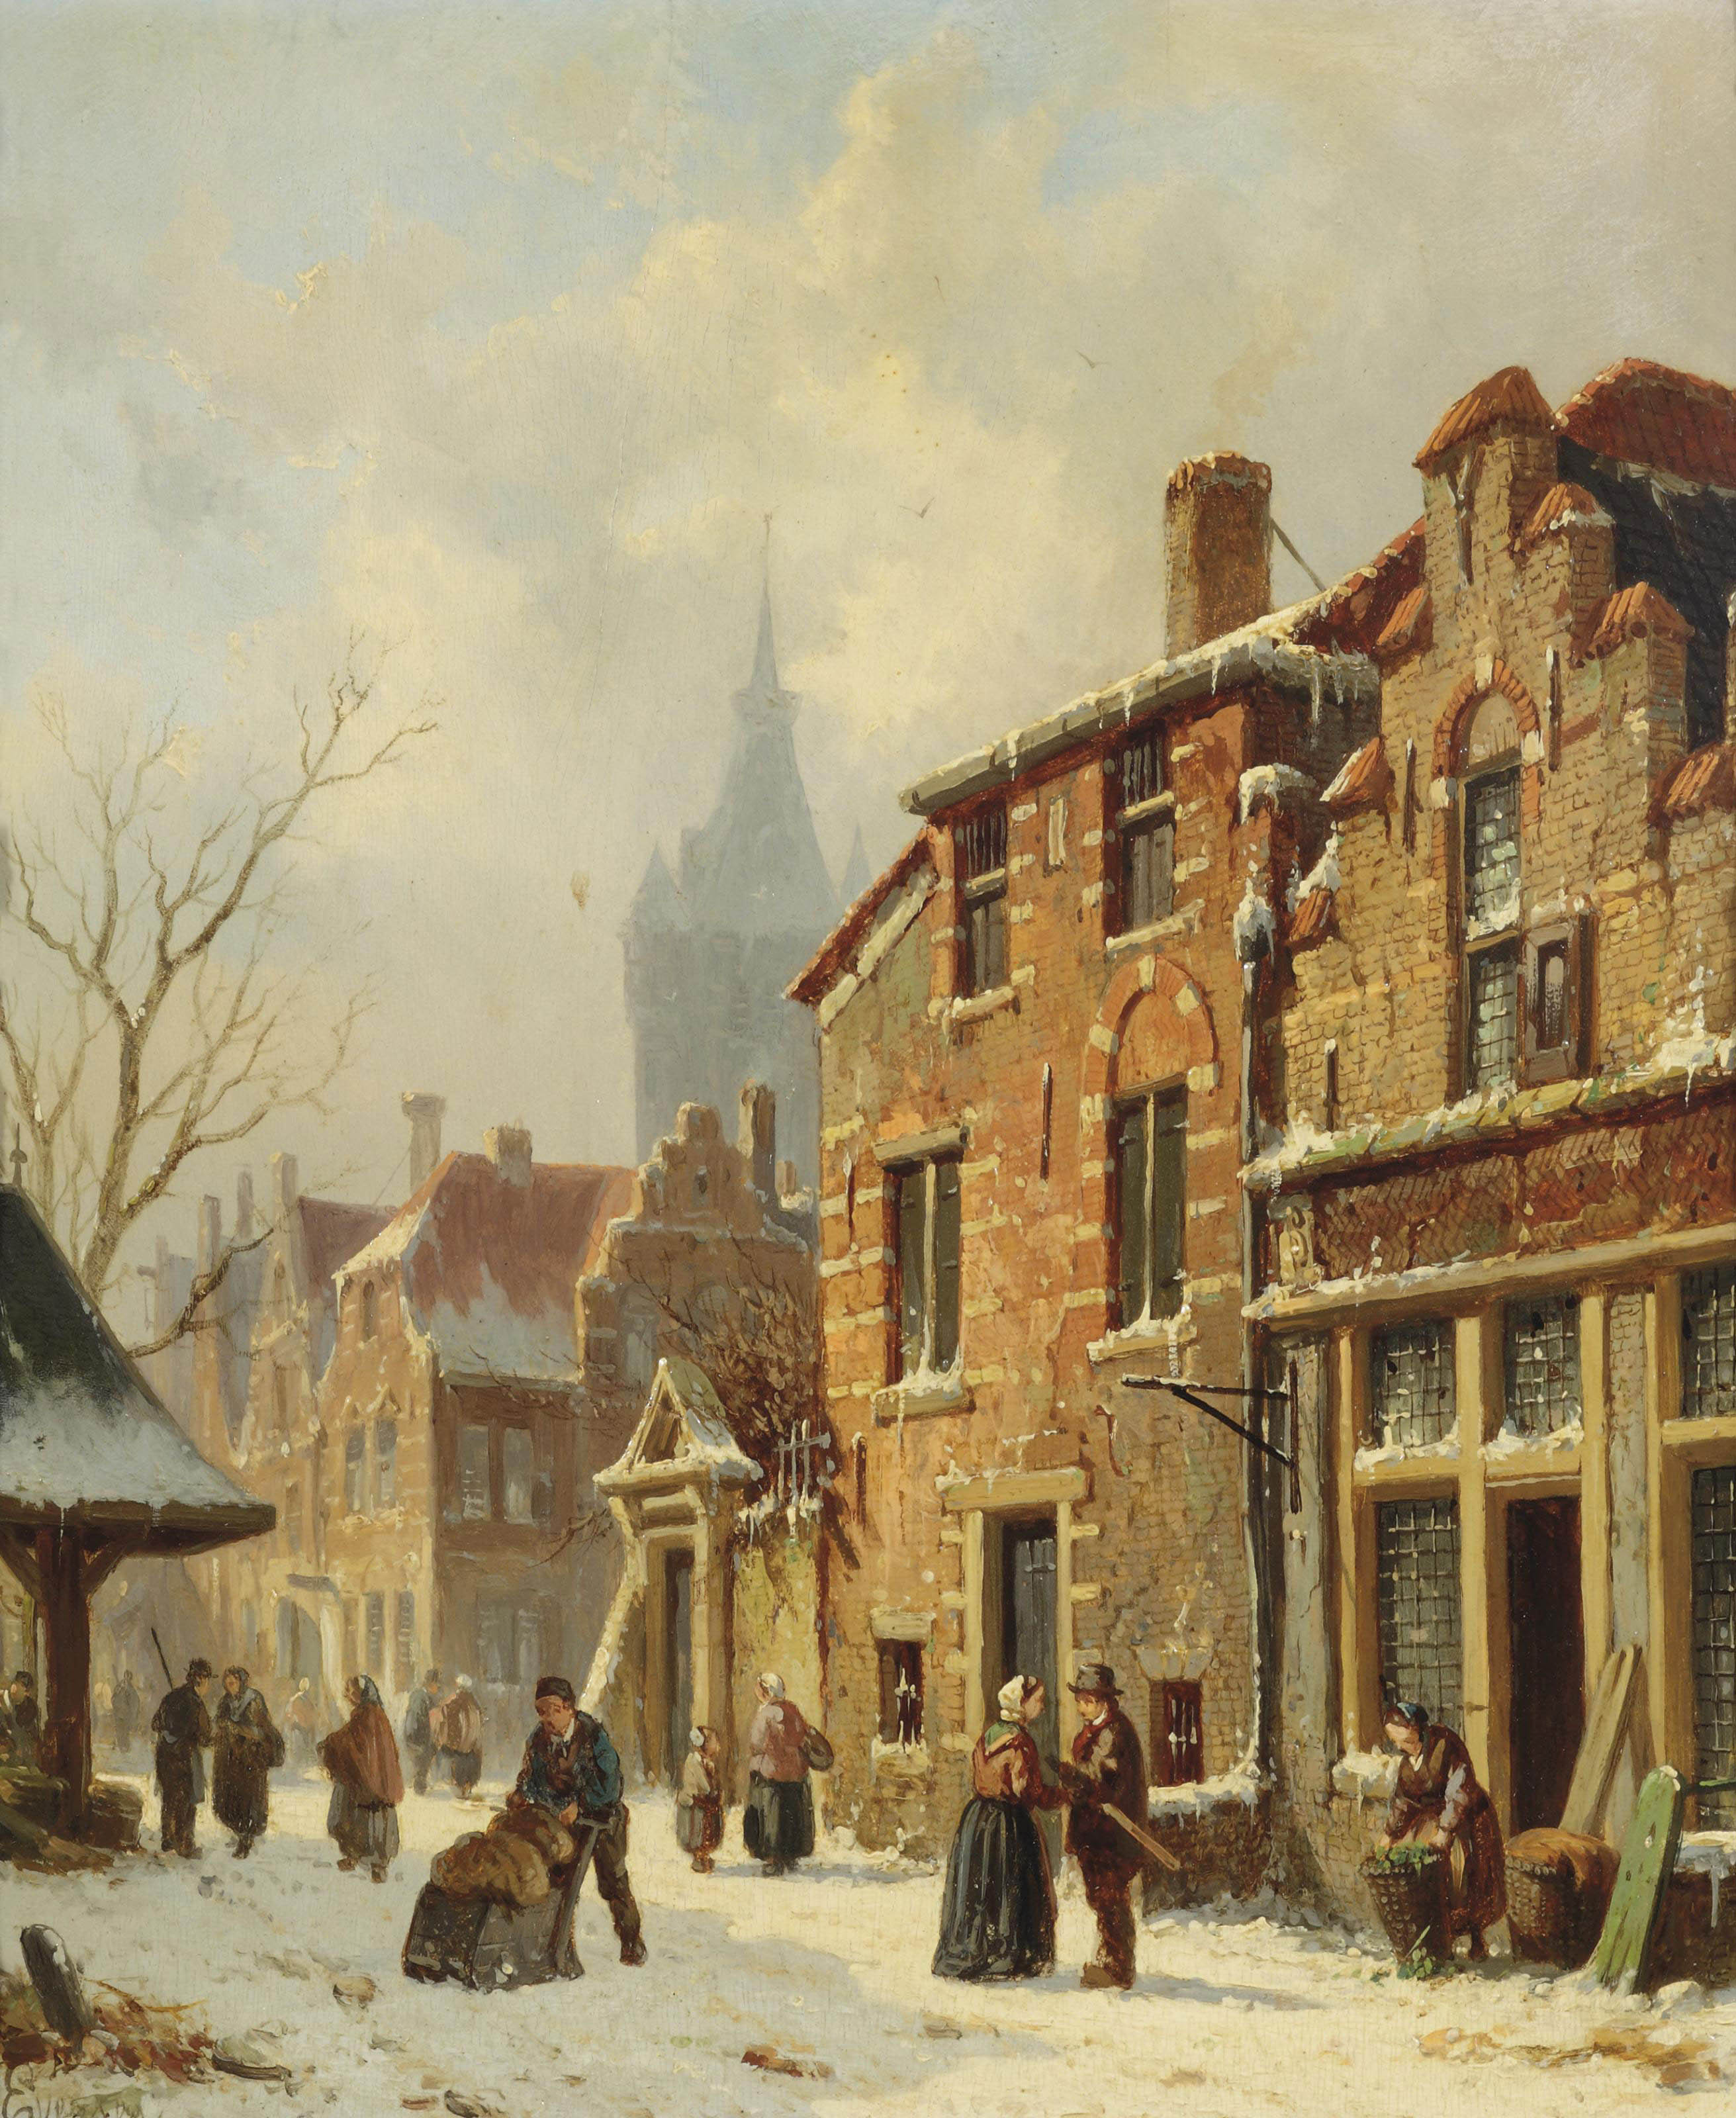 Numerous townspeople in a snow-covered street, Delft